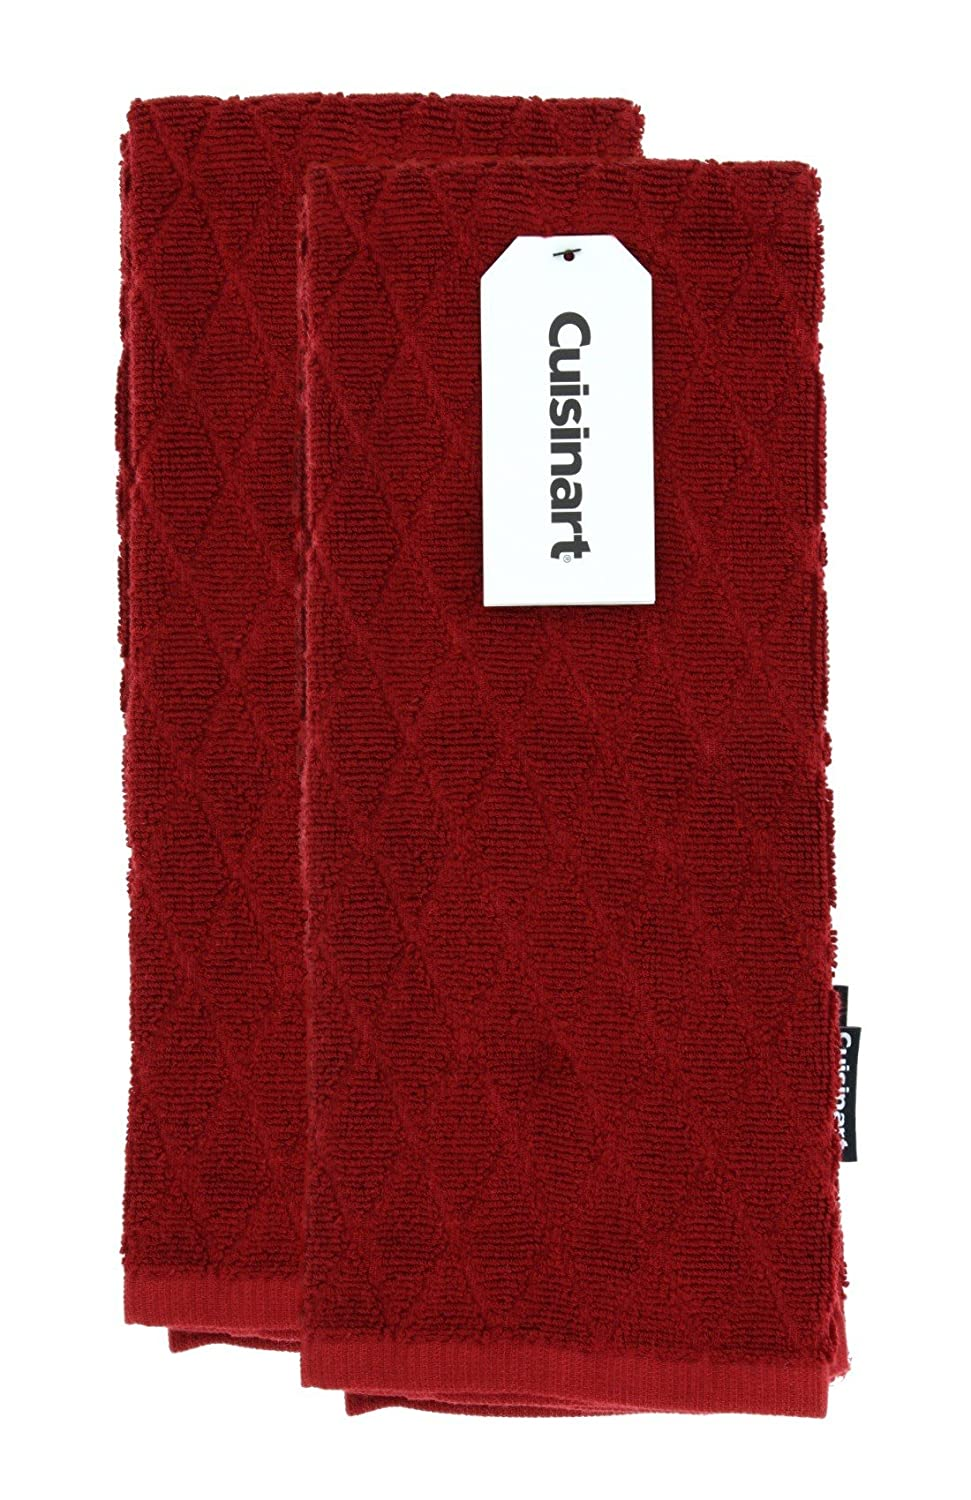 "Cuisinart Bamboo Kitchen, Hand and Dish Towels - Absorbent, Light-Weight, Soft and Anti-Microbial - Dry Hands and Dishes - Premium Bamboo/Cotton Blend - Red Dahlia, Set of 2, 16 x 26"", Diamond Design"